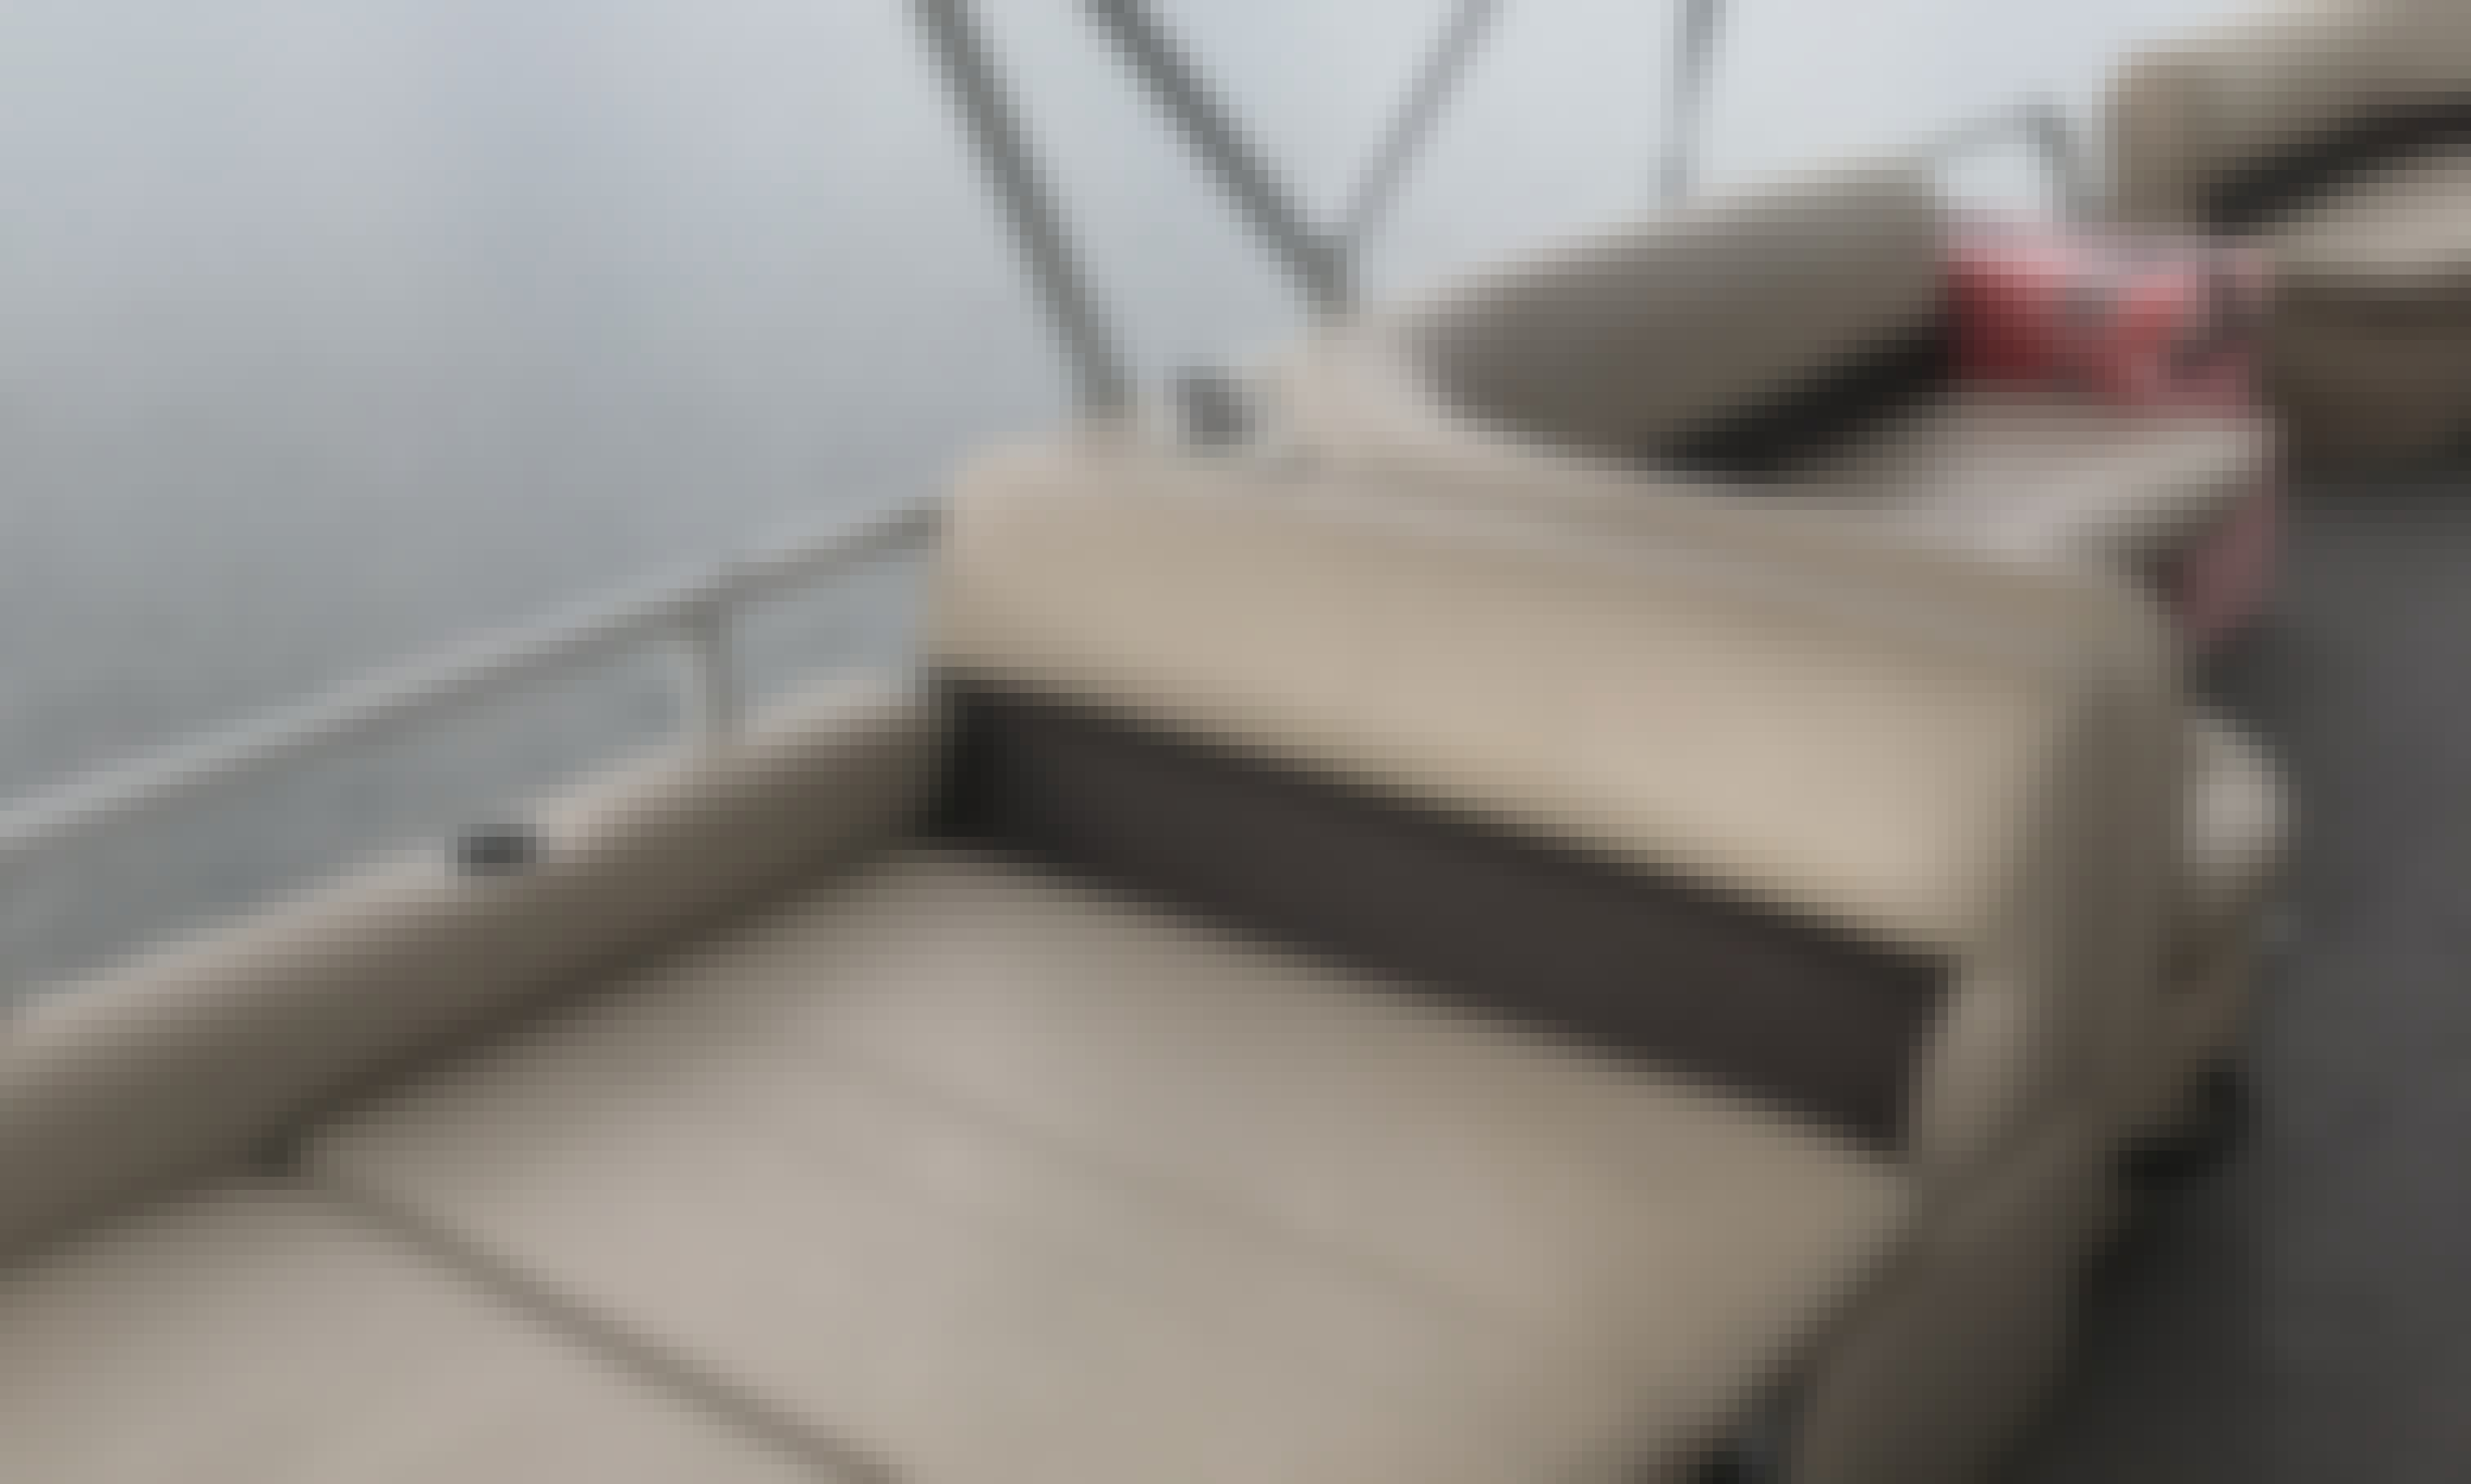 Rent a Beautiful 22' 115HP Pontoon for 12 Passengers in Chicago, Illinois!